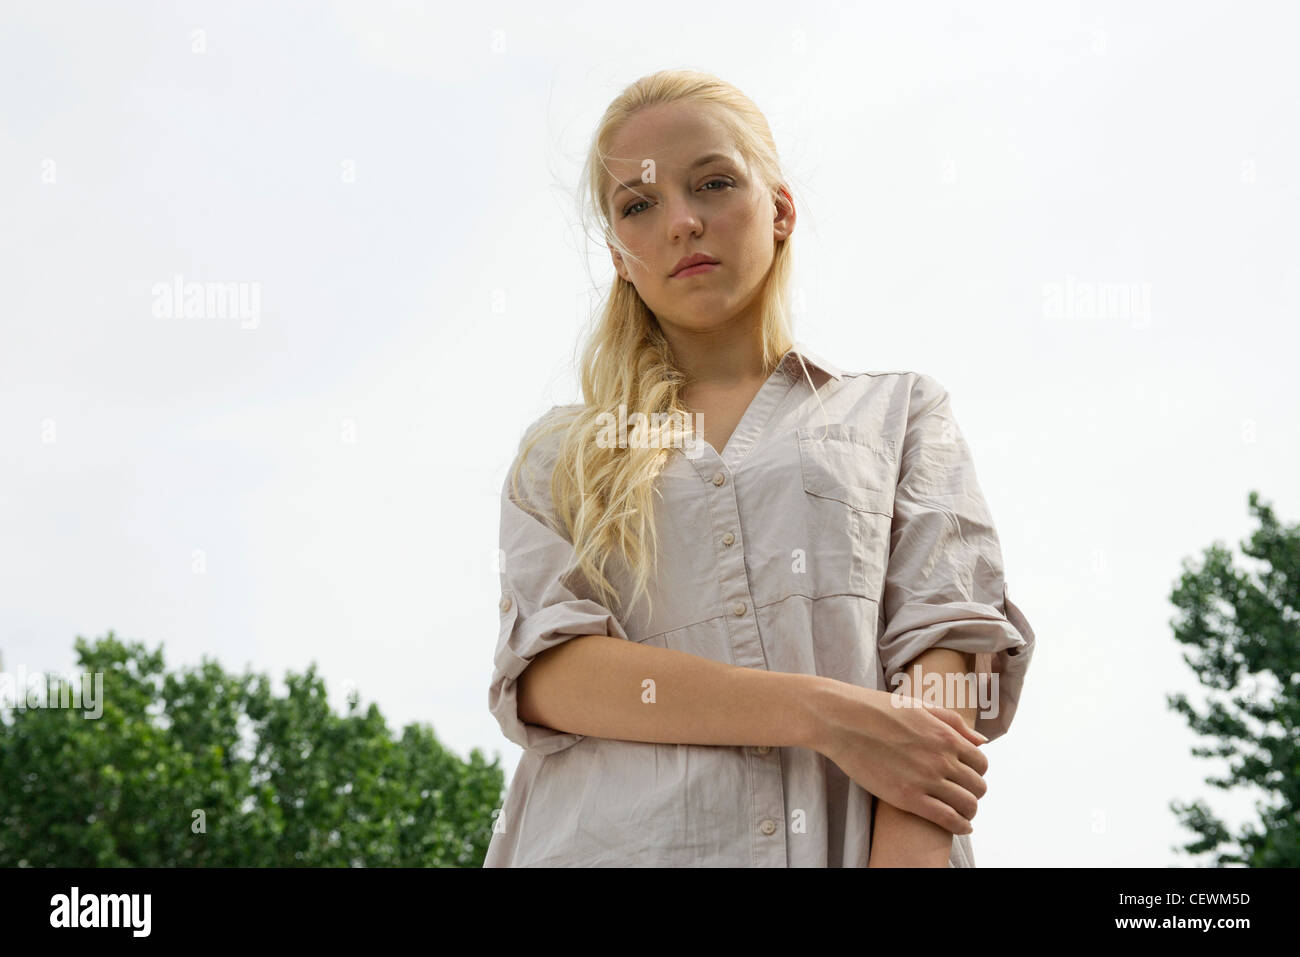 Young woman looking at camera with sad expression - Stock Image